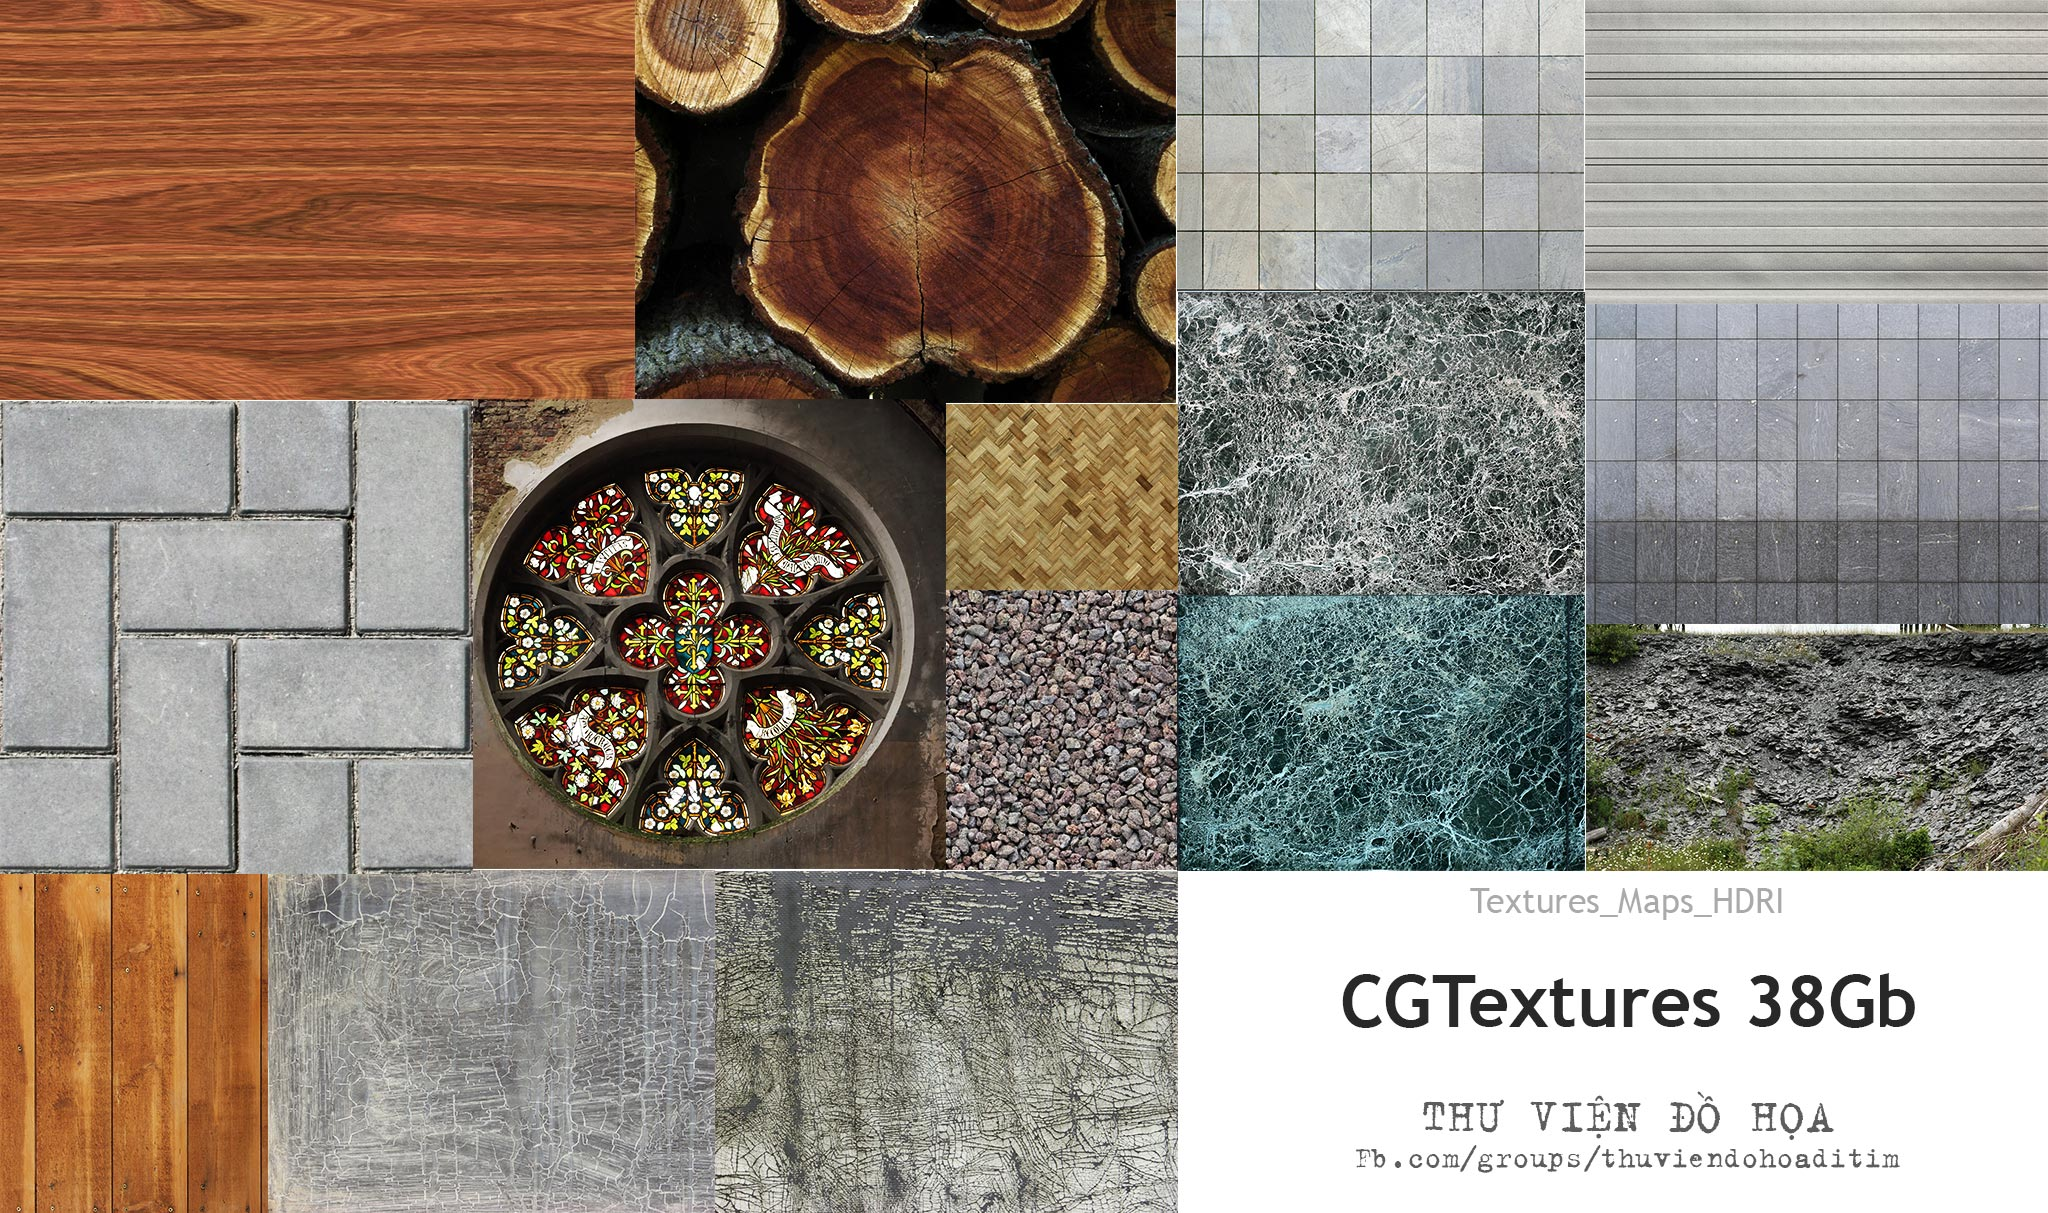 [Textures] CGTextures 38Gb Full